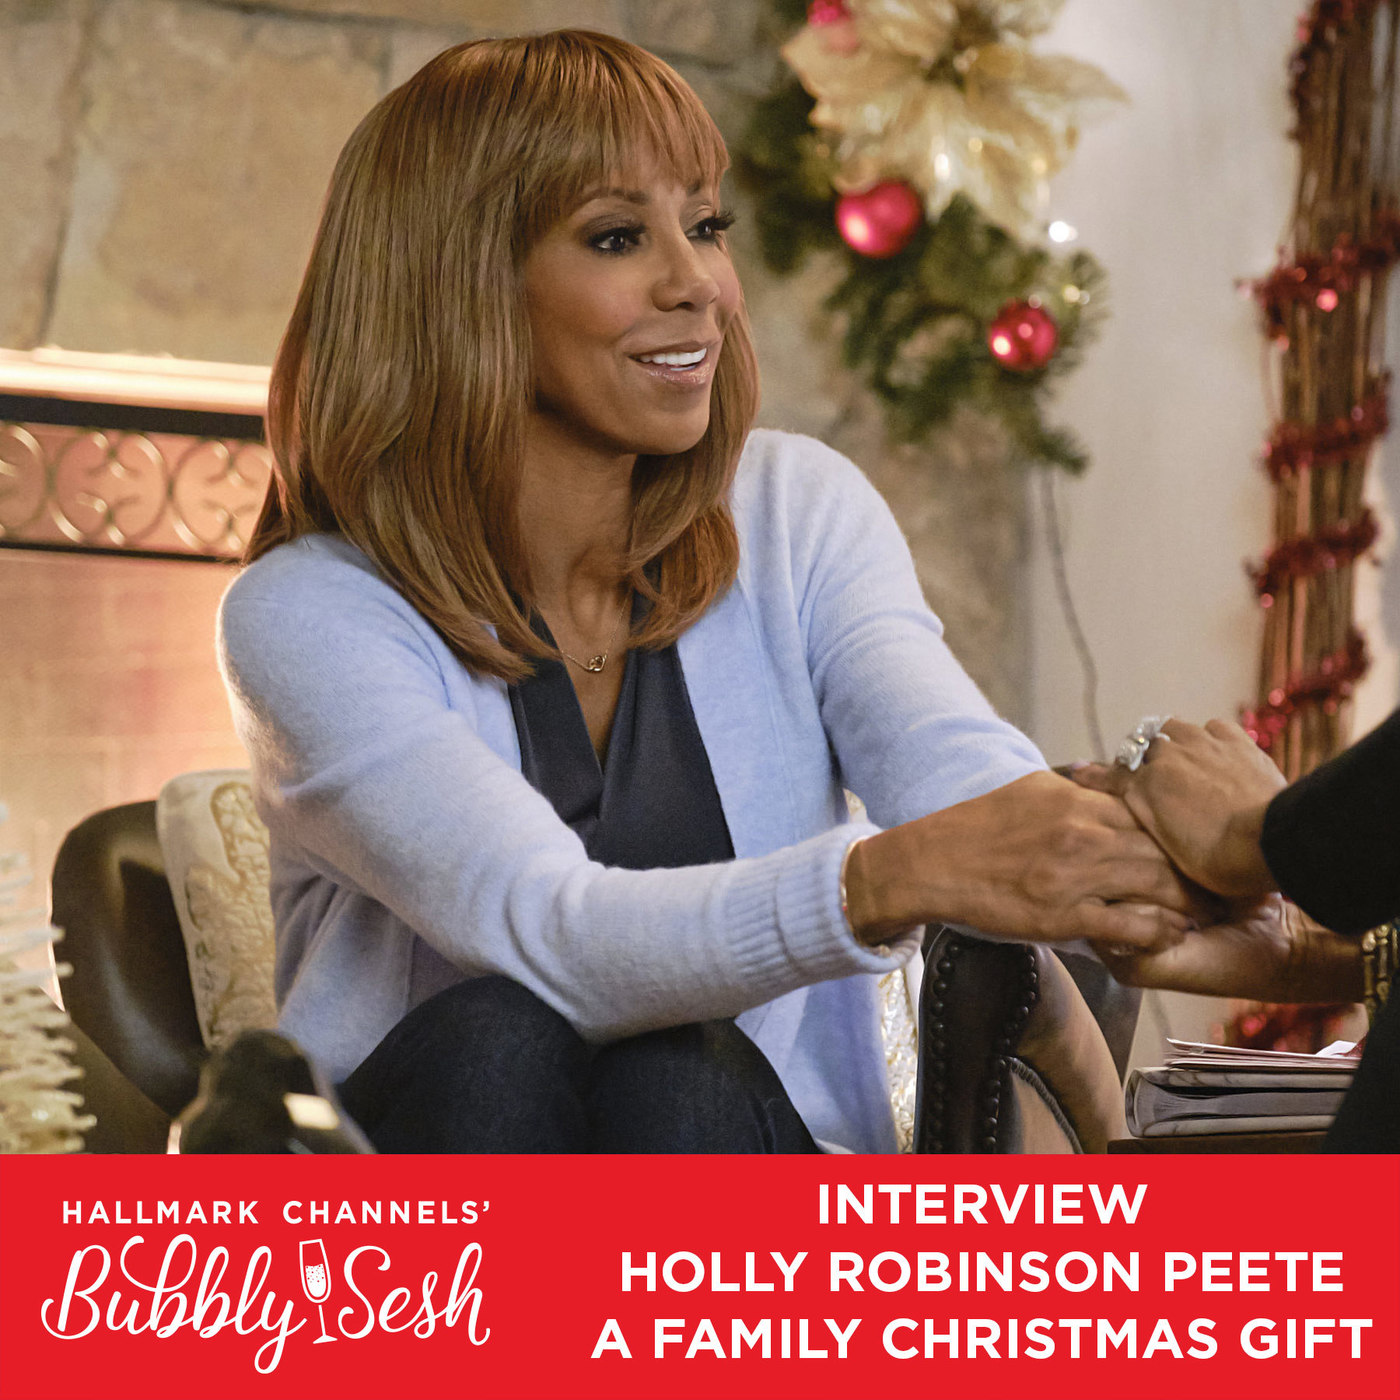 Holly Robinson Peete Interview, A Family Christmas Gift